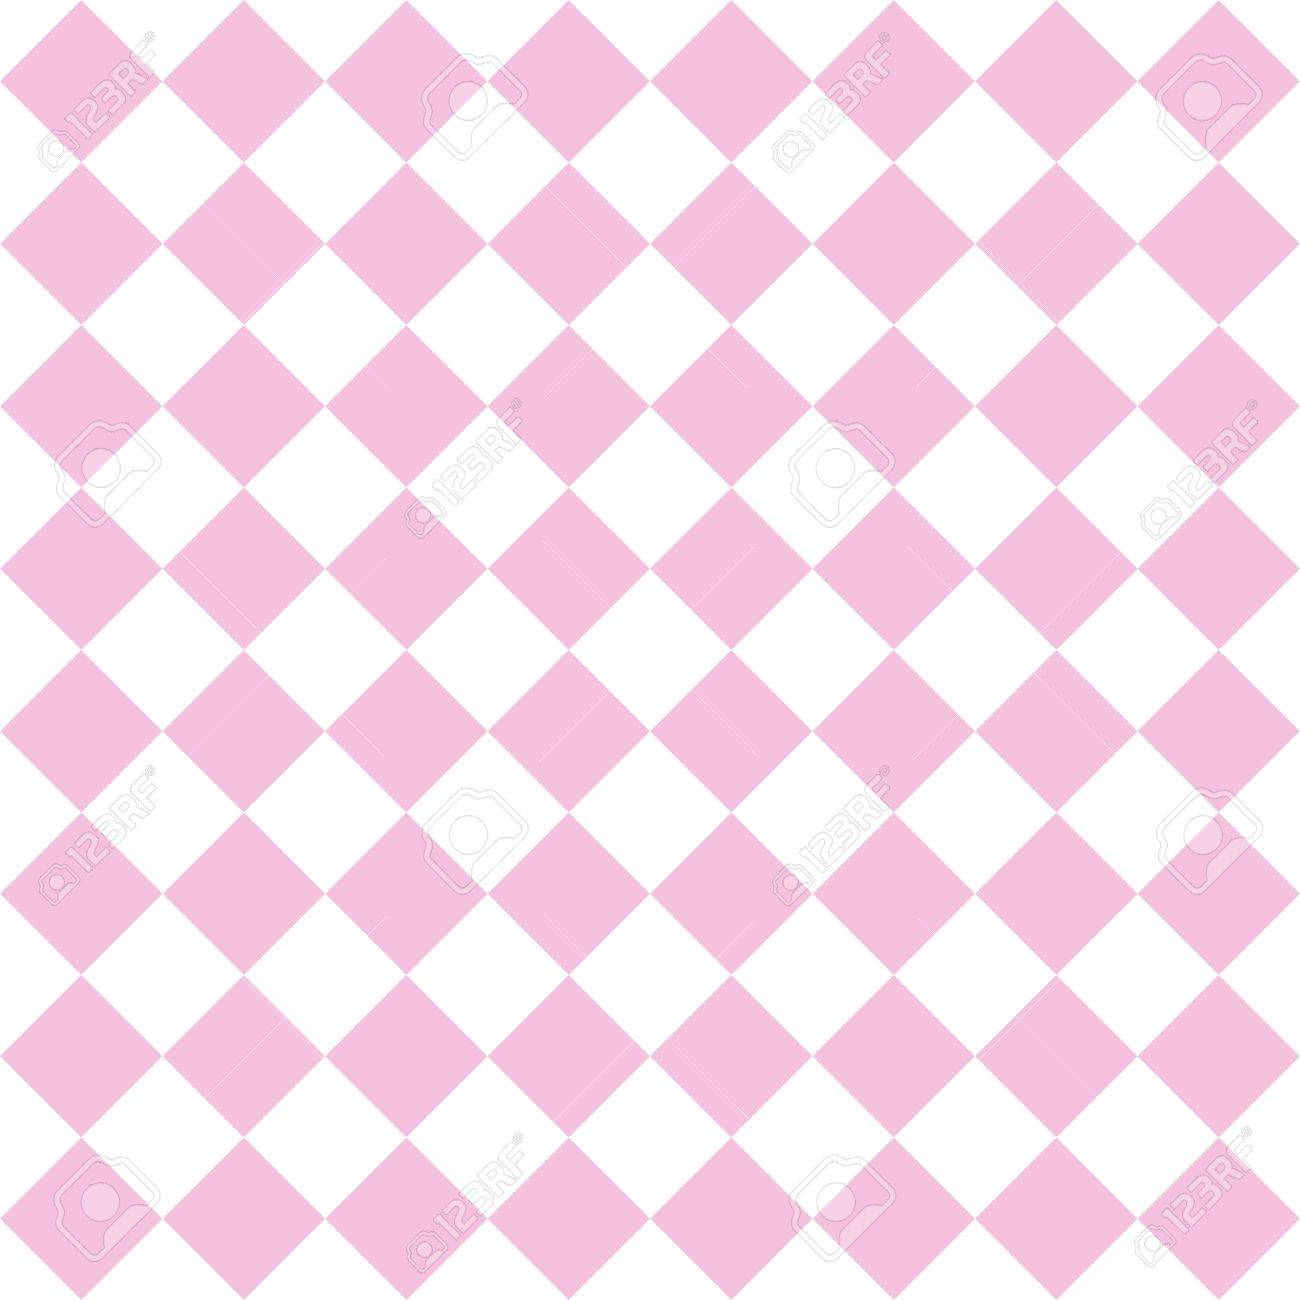 Checkered Tile Vector Pattern Or Pink And White Wallpaper Background Stock